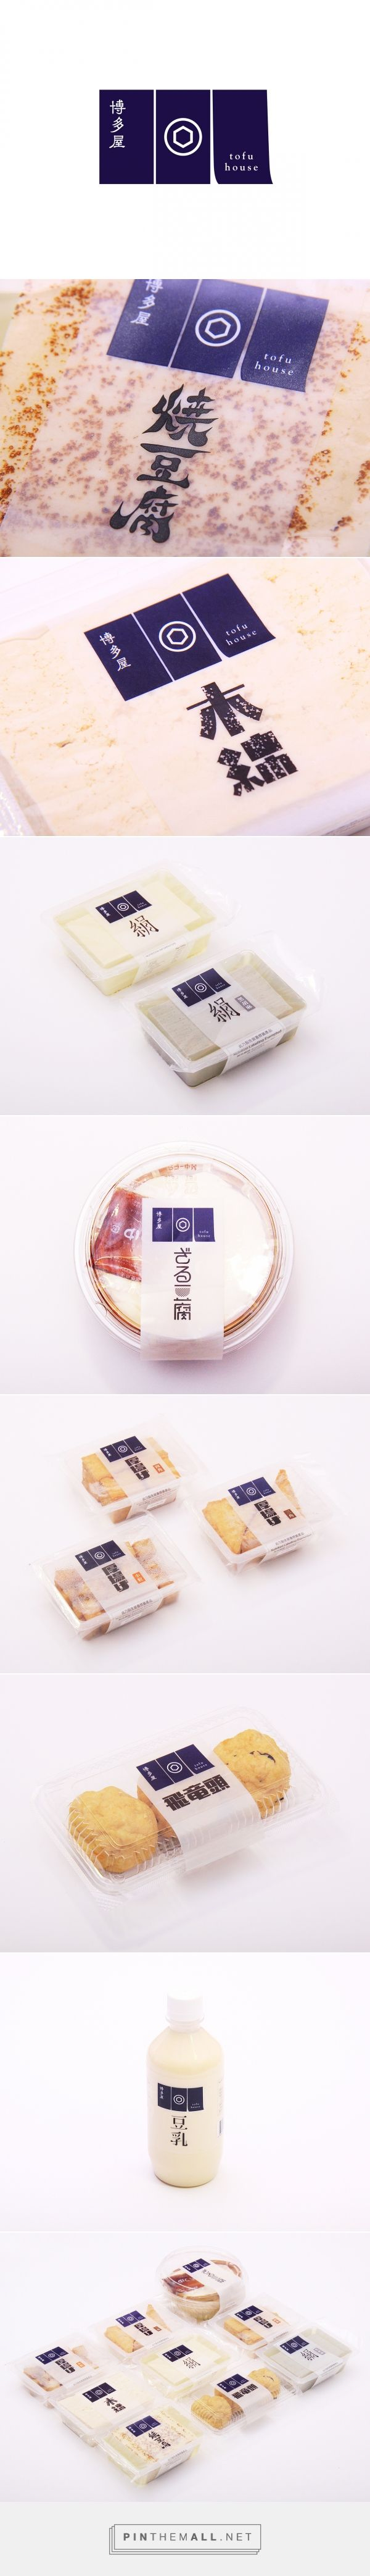 Tofu House on Packaging of the World - Creative Package Design Gallery - created via https://pinthemall.net